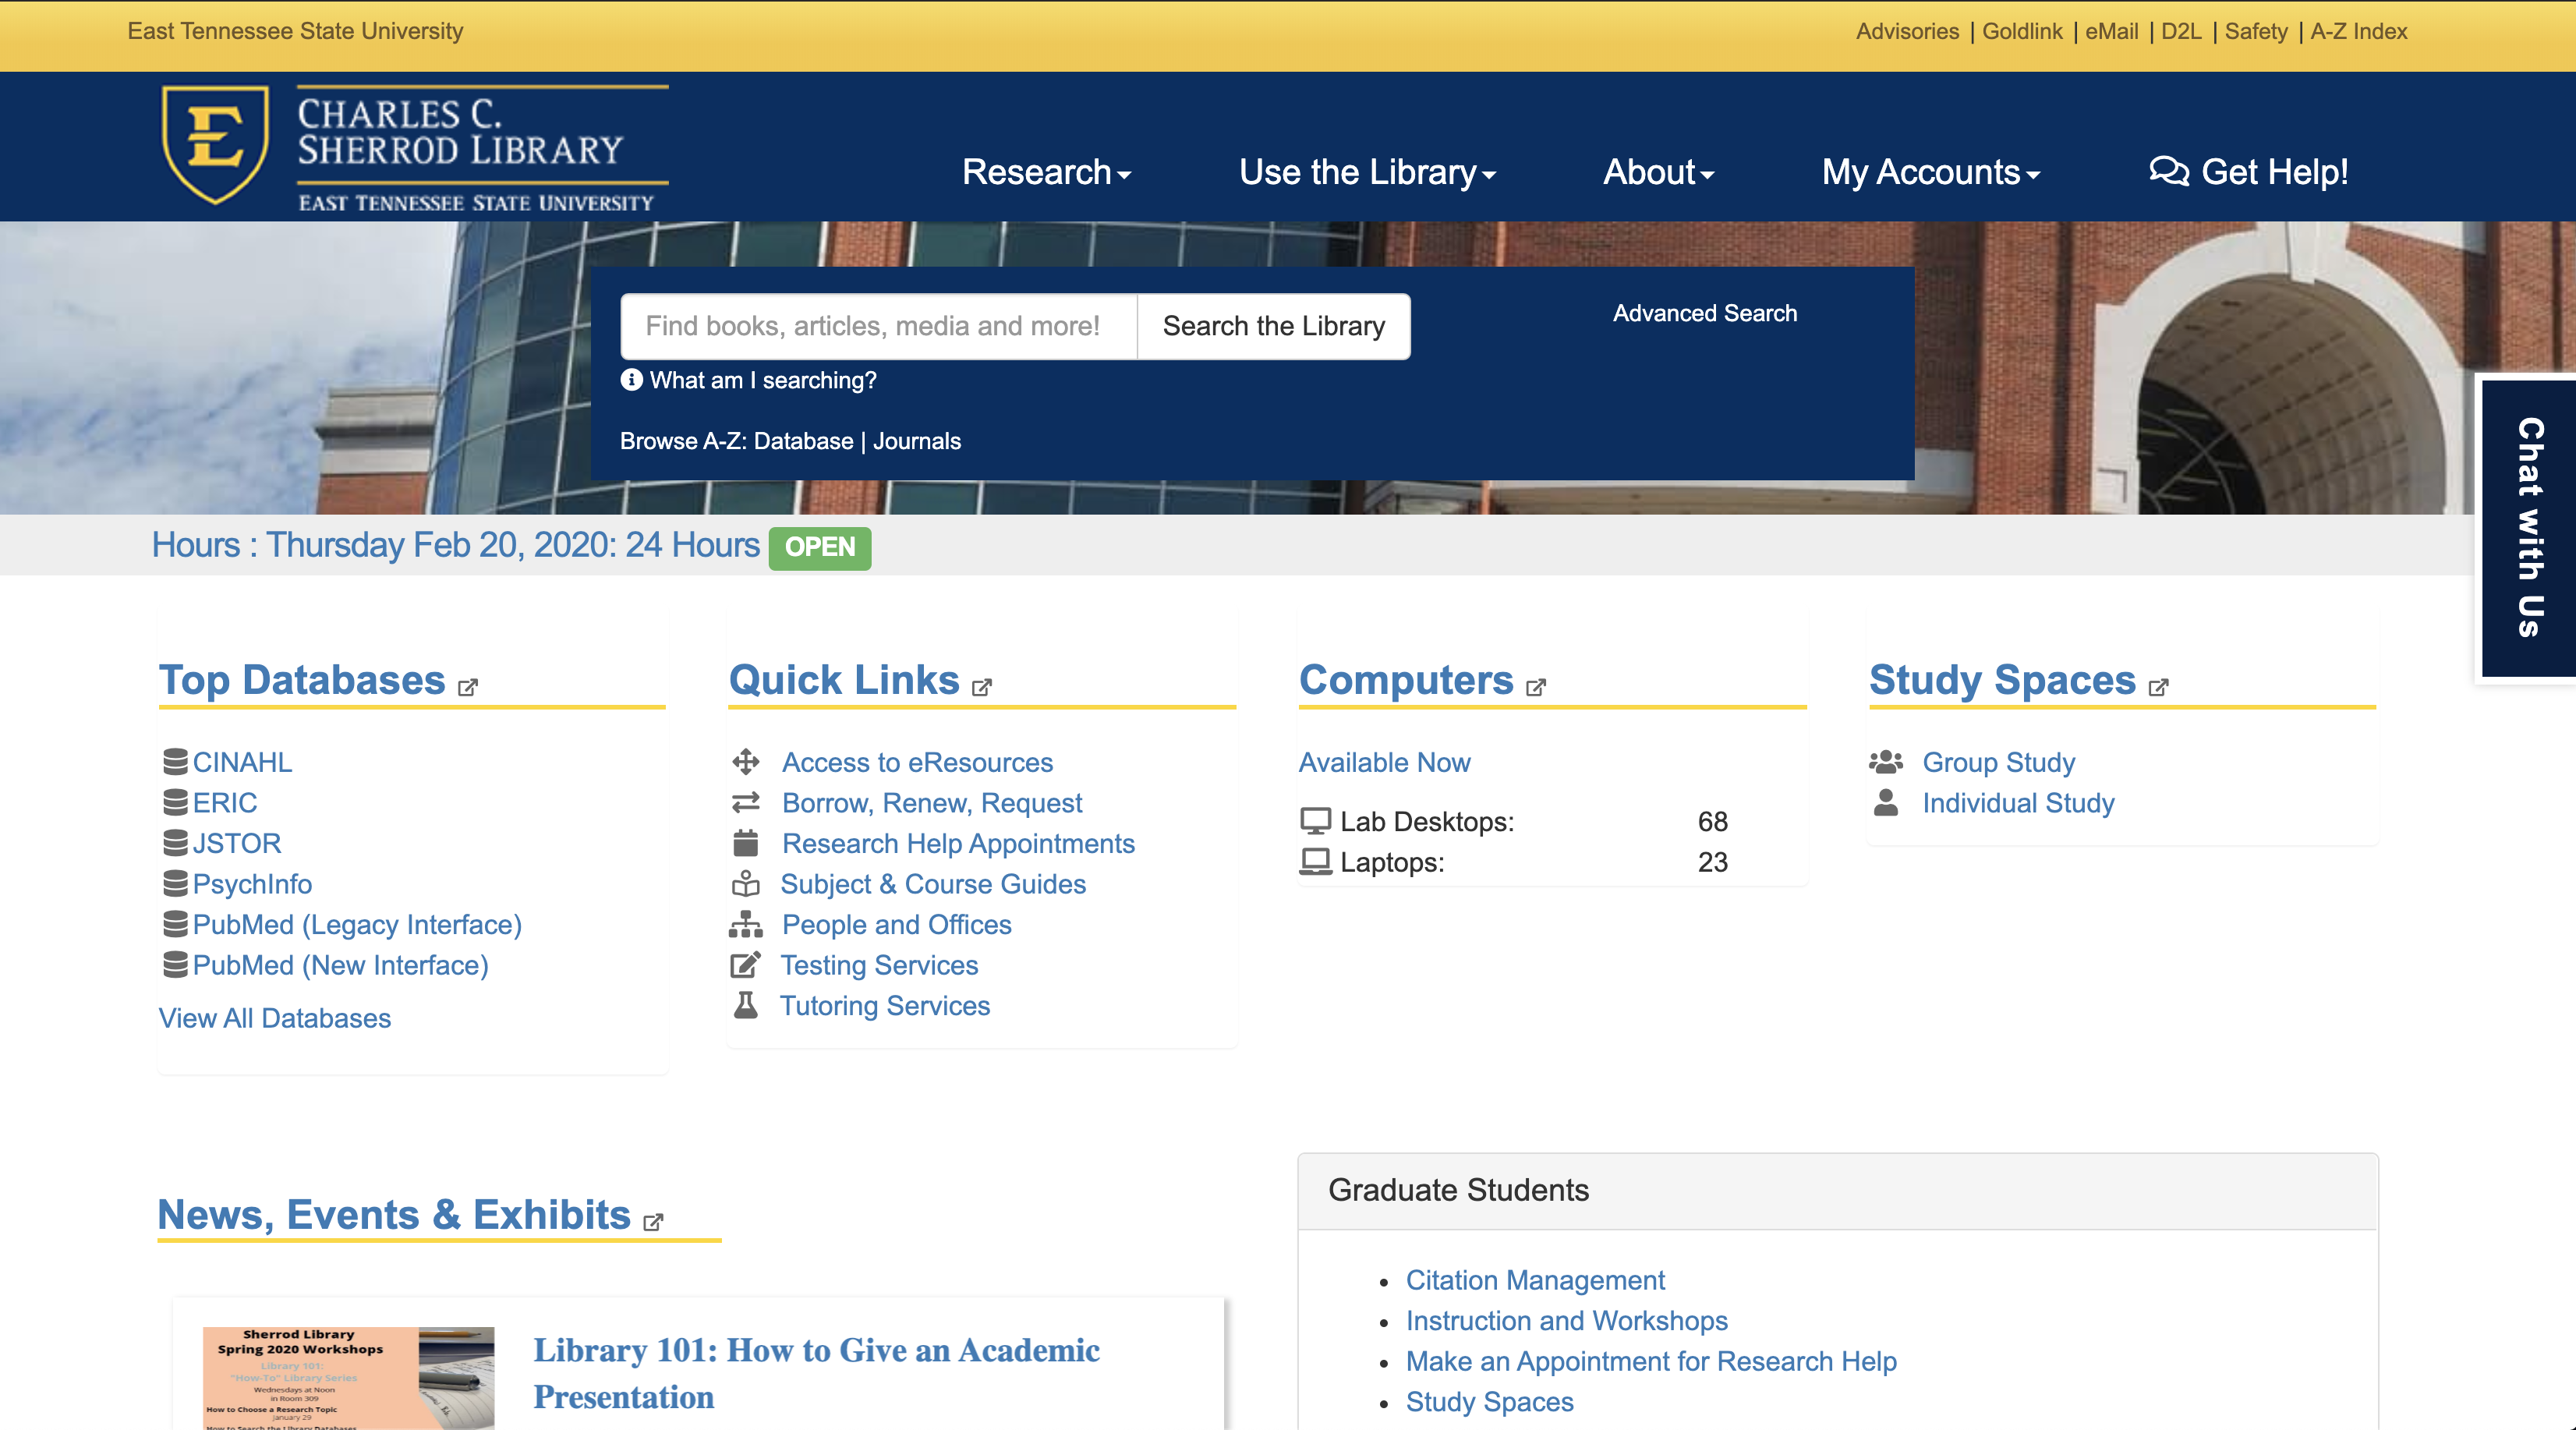 ETSU Library Website